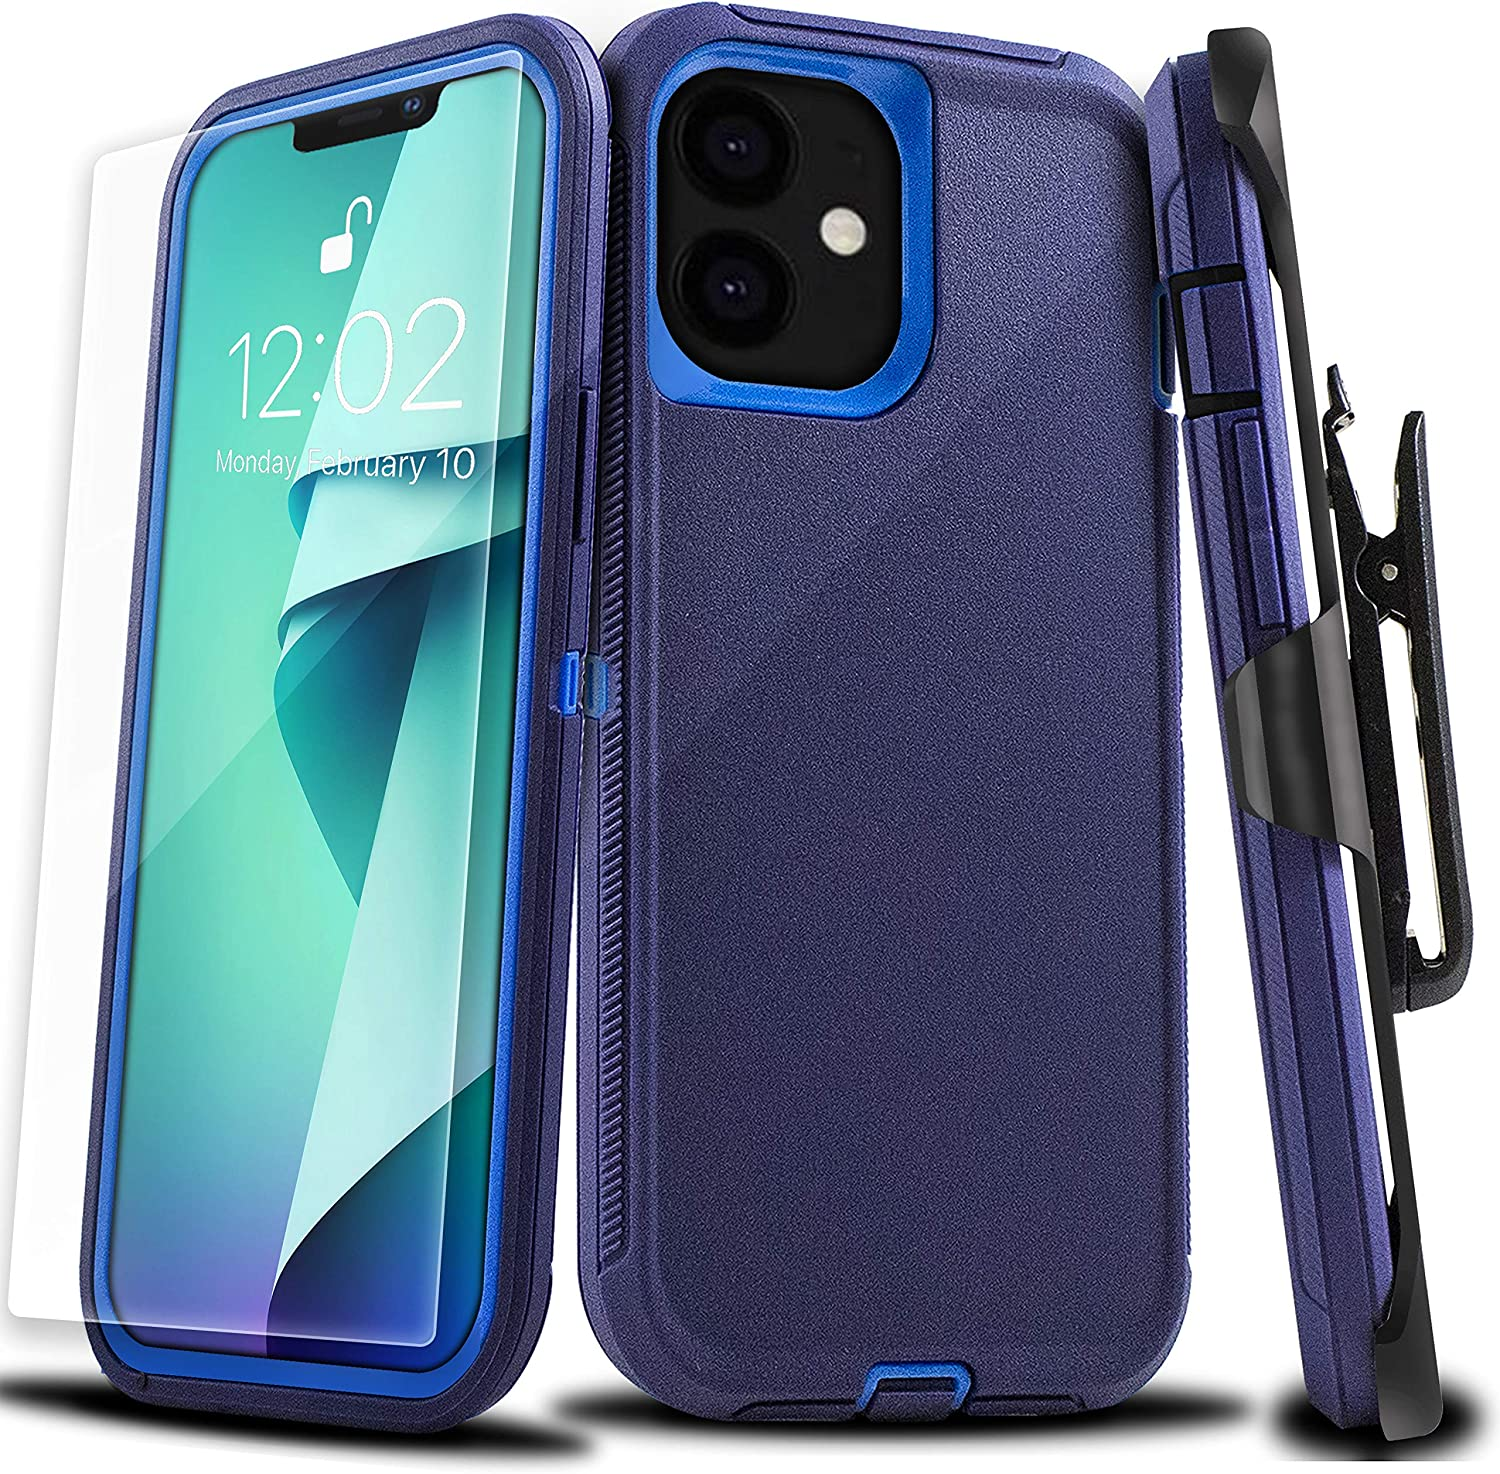 XG-Tech Case for iPhone 12 Pro & iPhone 12 [6.1''] Protective Shockproof [Military Grade] 3 in 1 Rugged Armor Full Body Heavy Duty Case Cover with Belt Clip [Free Tempered Glasses] Navy/Blue